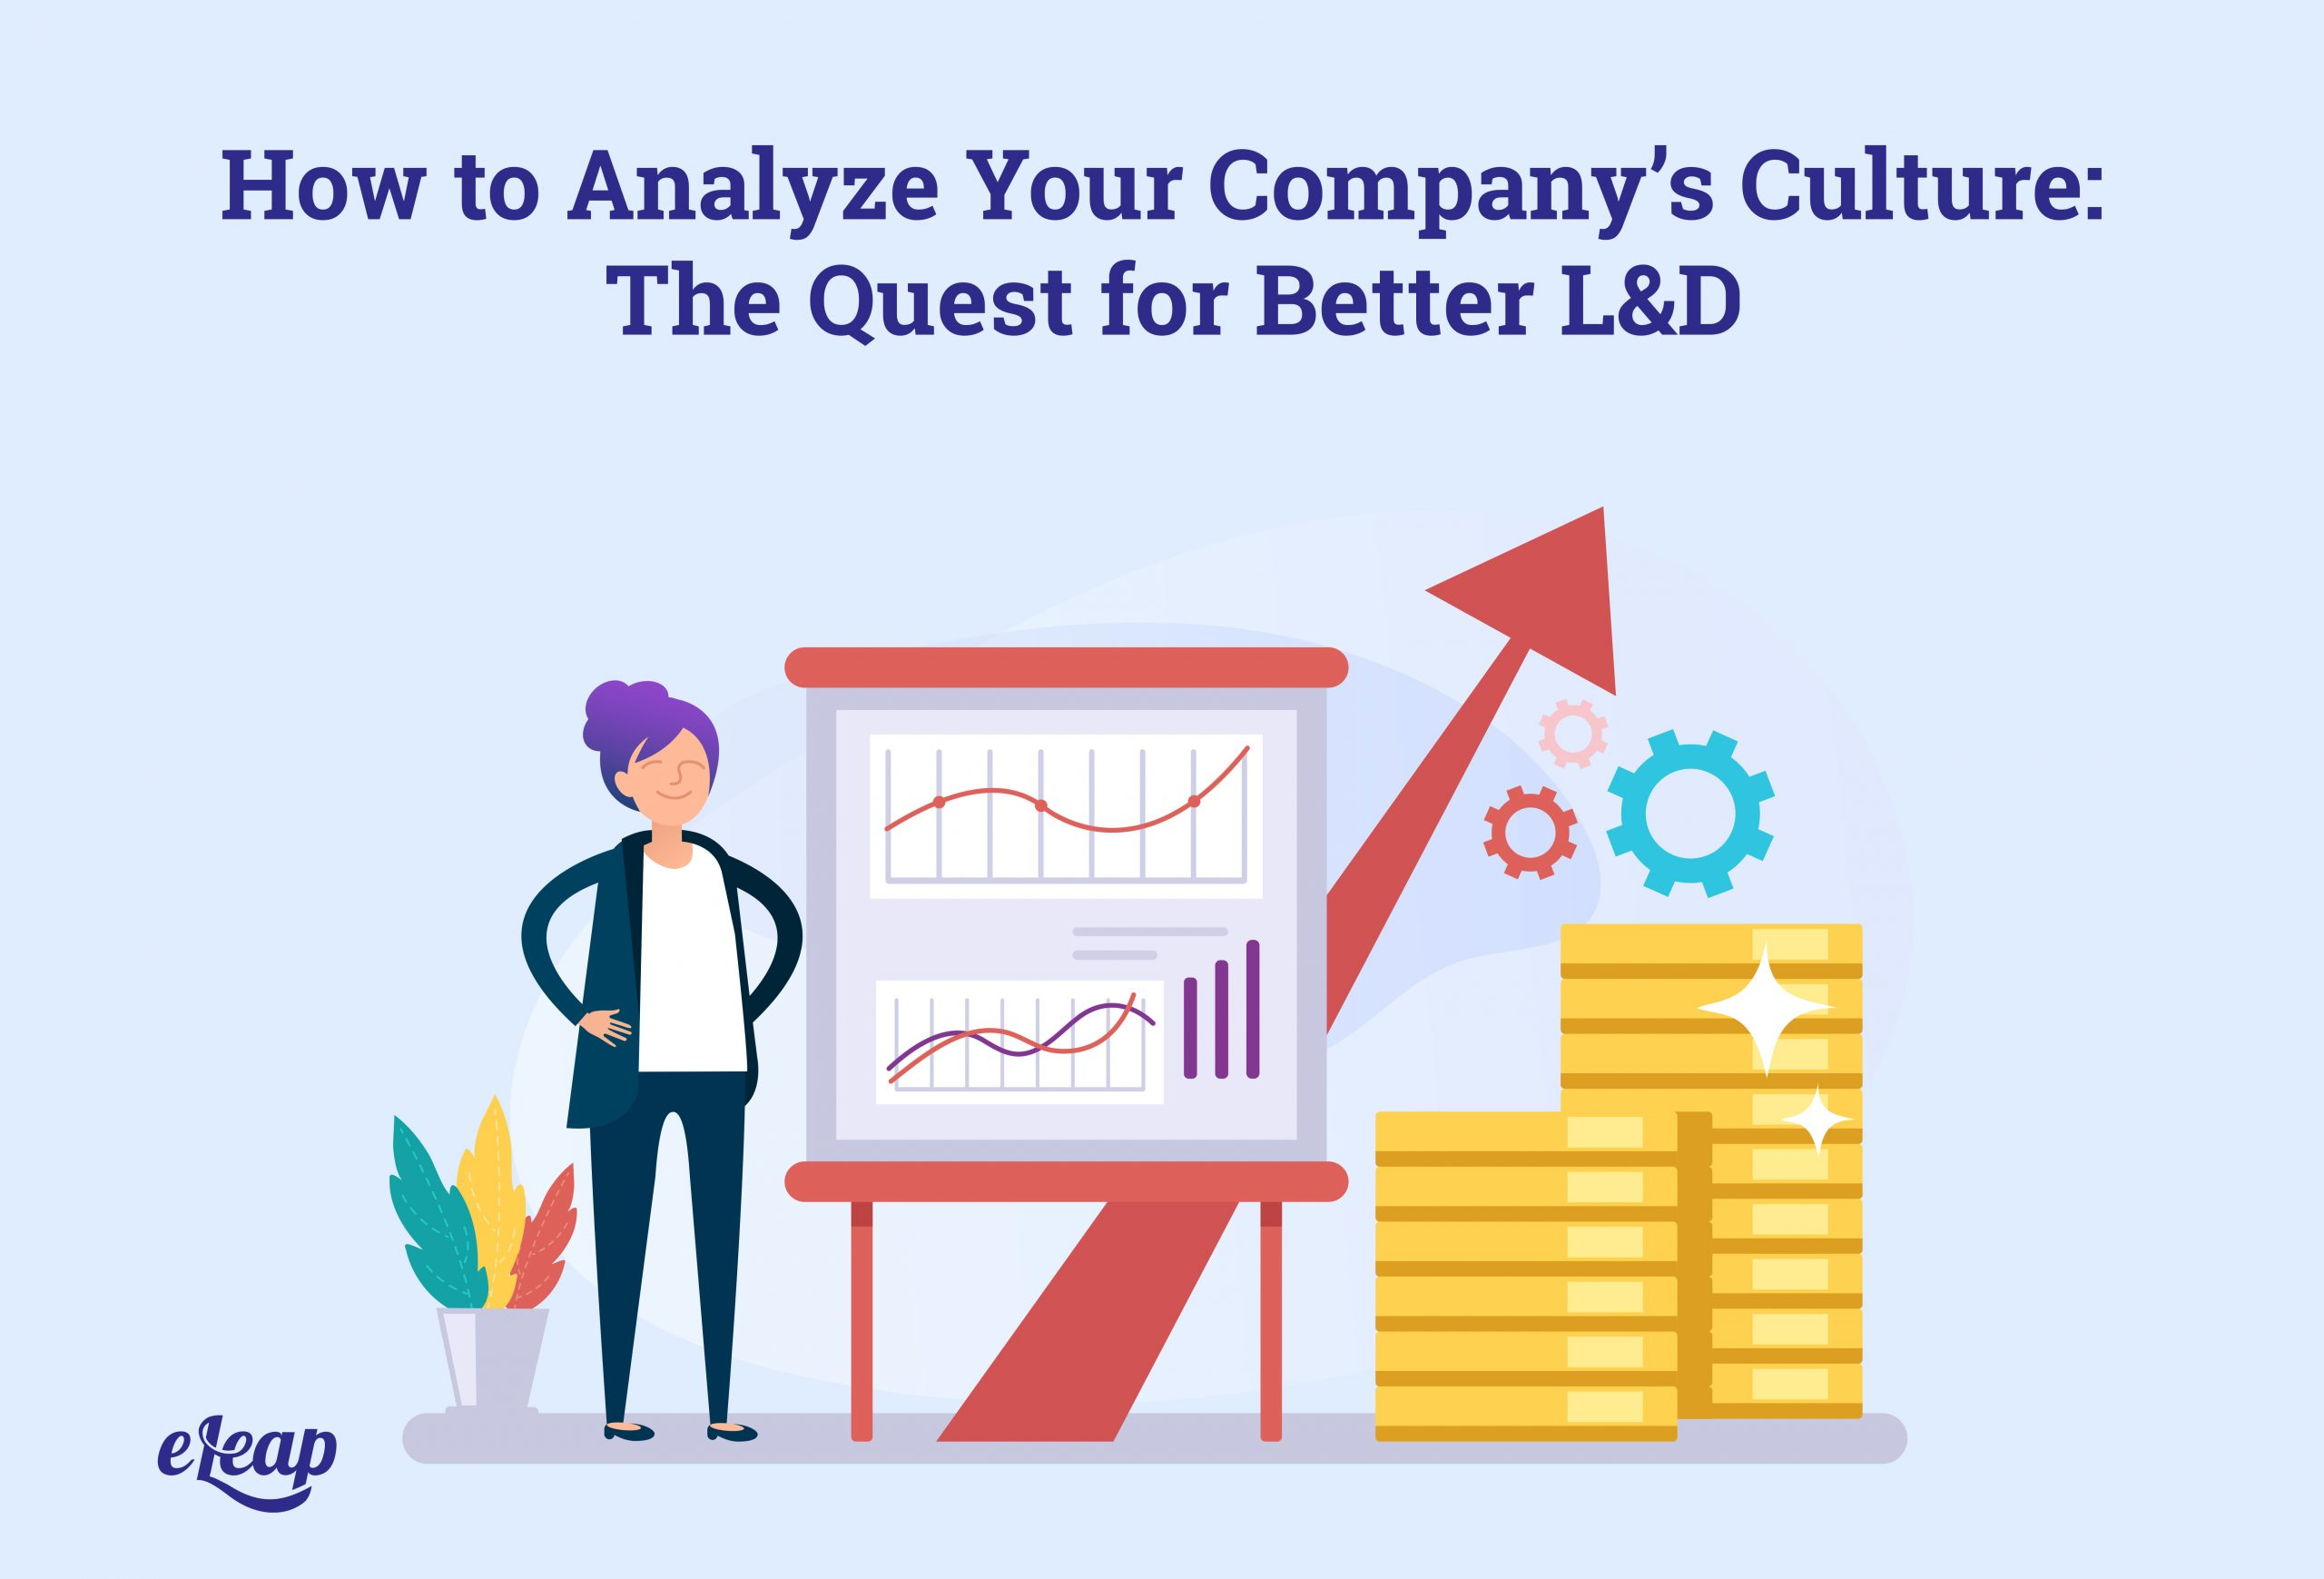 How to Analyze Your Company's Culture: The Quest for Better L&D